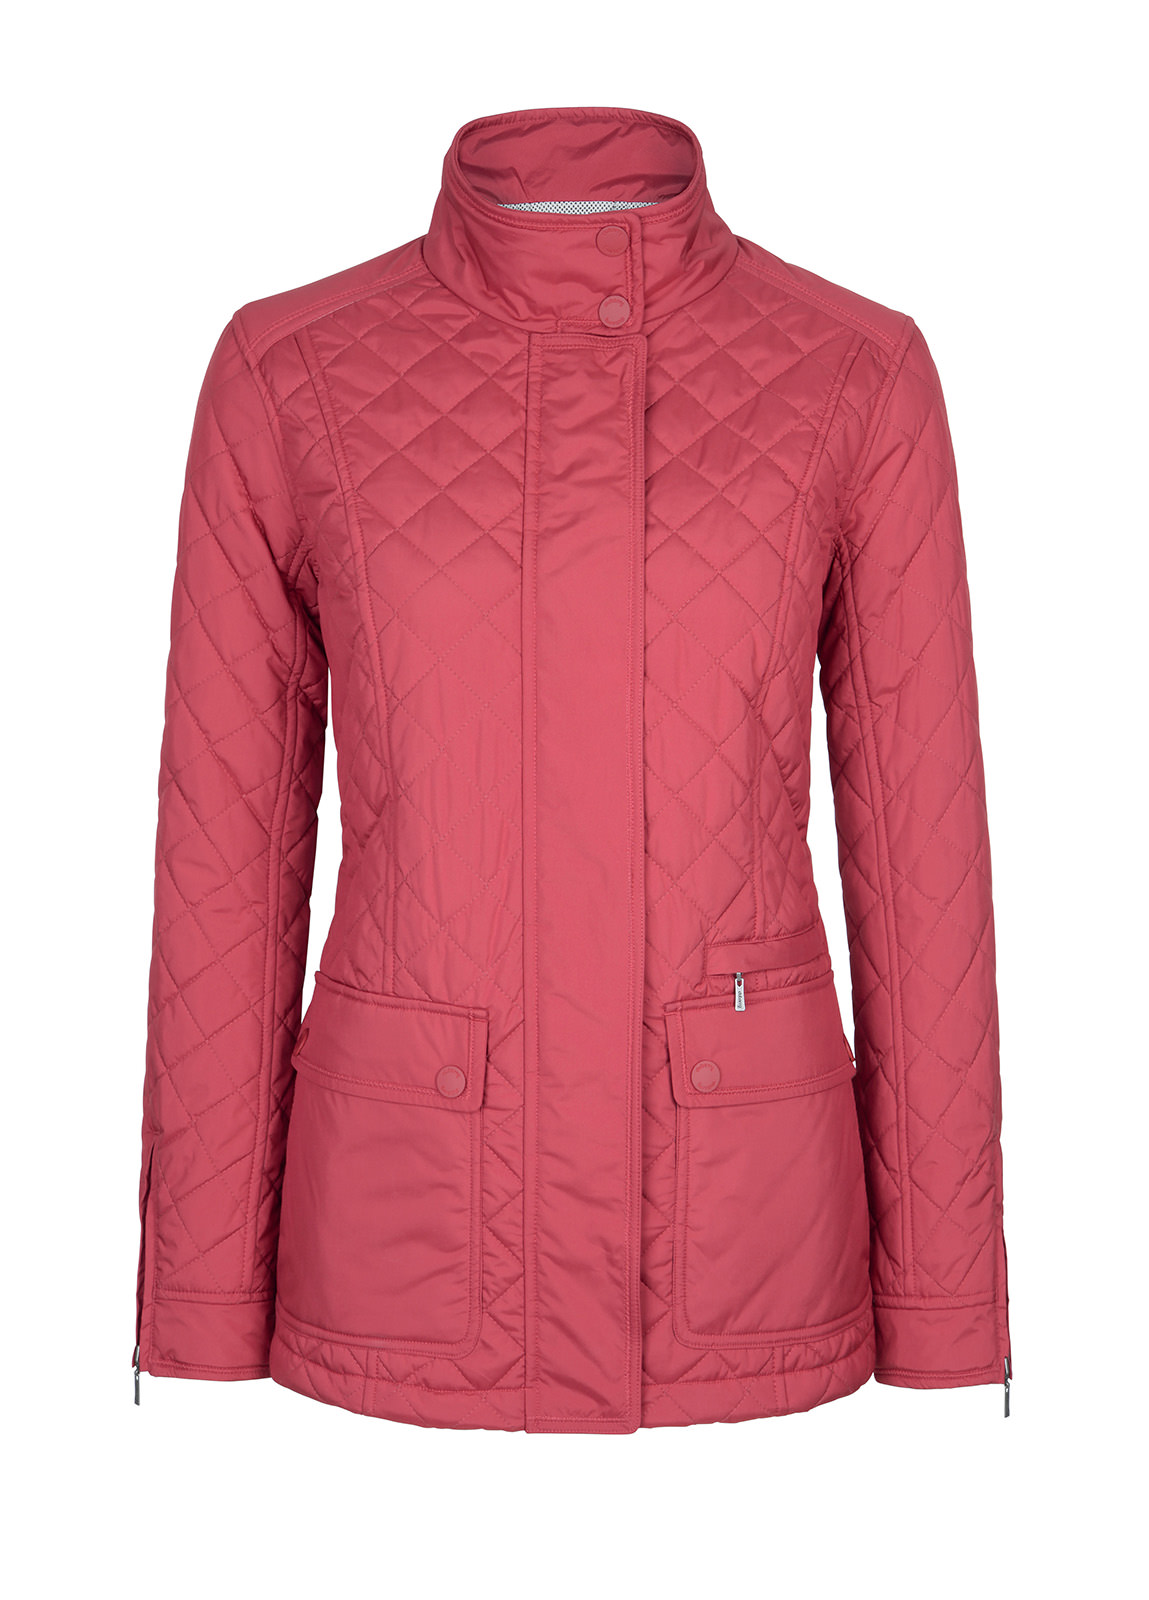 Dubarry_Behan Waterproof Quilted Jacket - Merlot Multi_Image_2